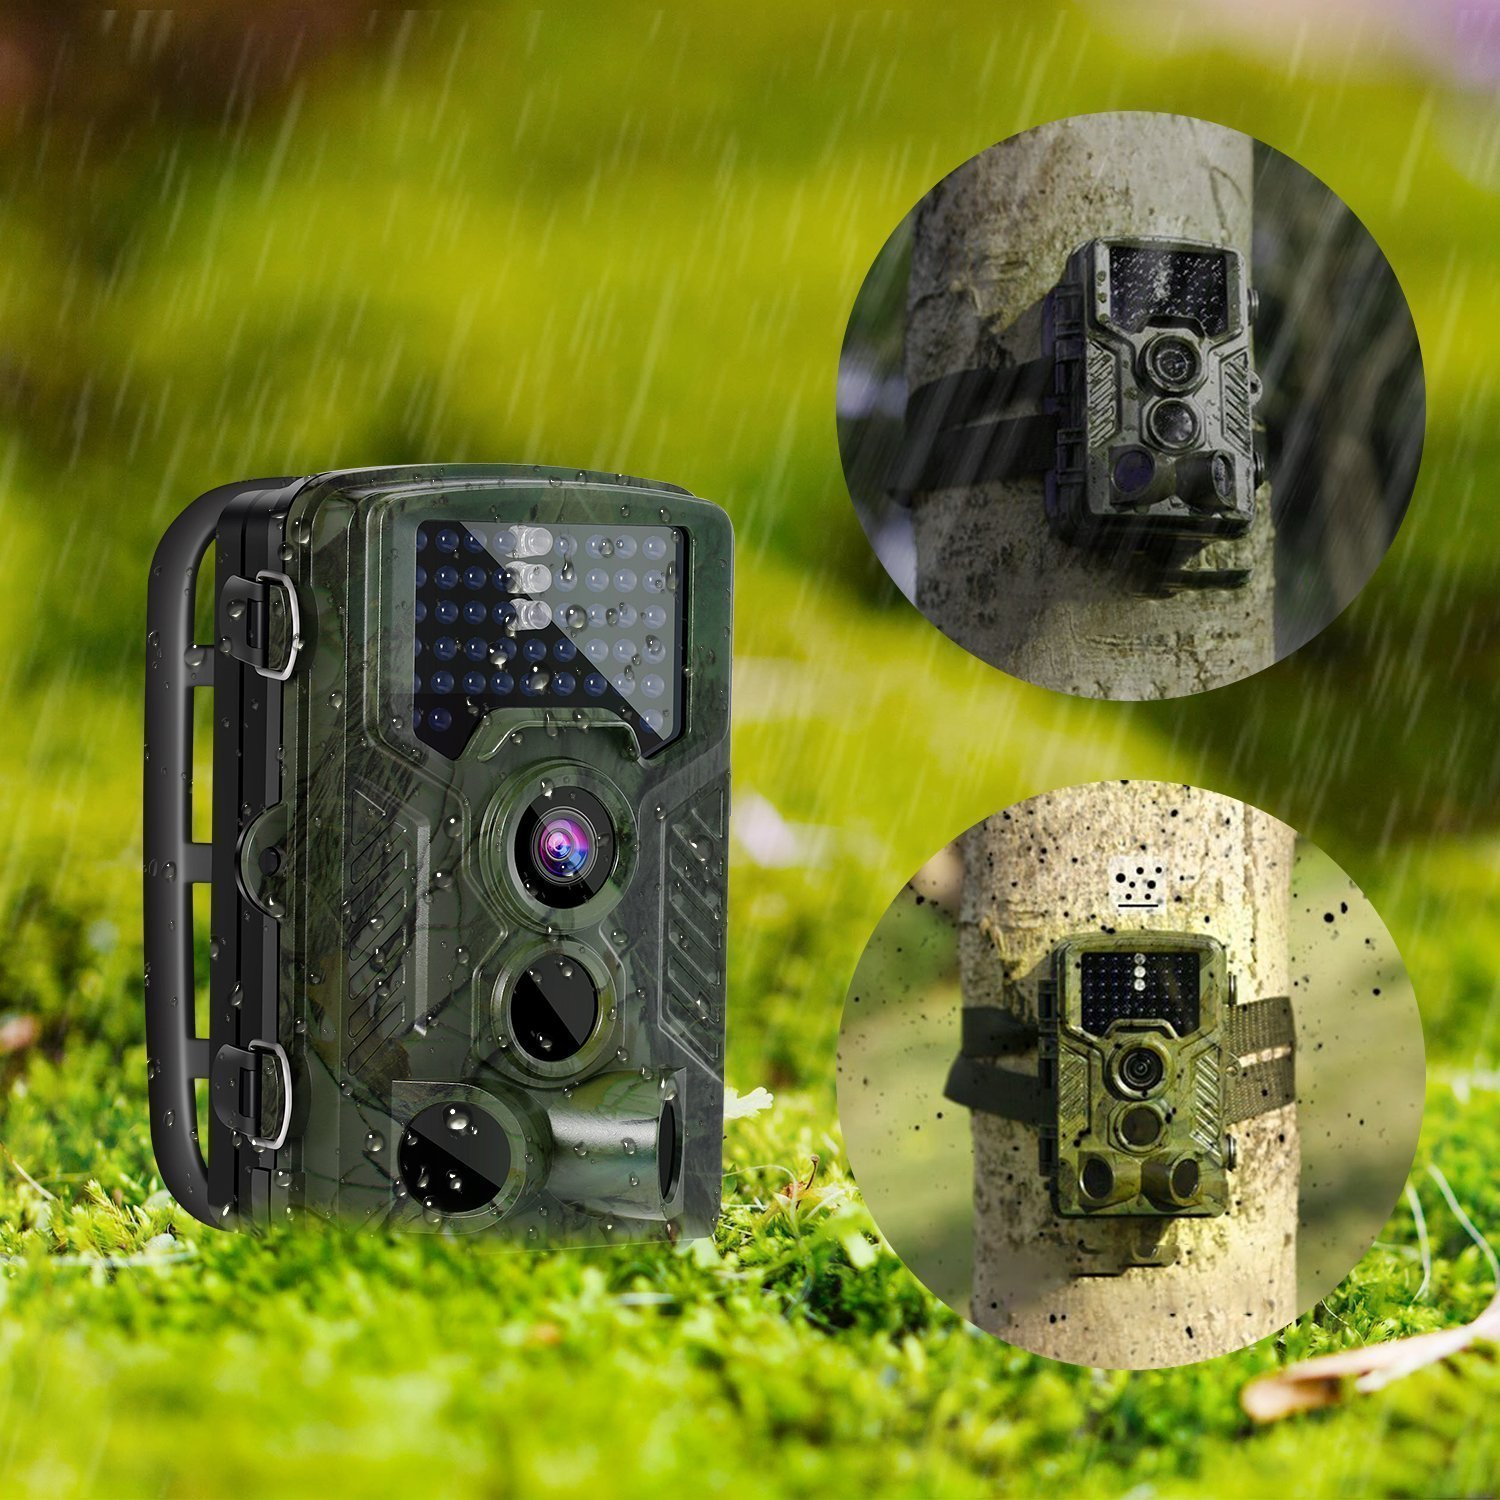 Ip Trail hunting camera 16MP 1080p 120° PIR Sensor wildlife game camera 65ft Infrared Scouting Camera with night vision 46pcs IR LEDs IP56 waterproof by infinity prodotti (Image #6)